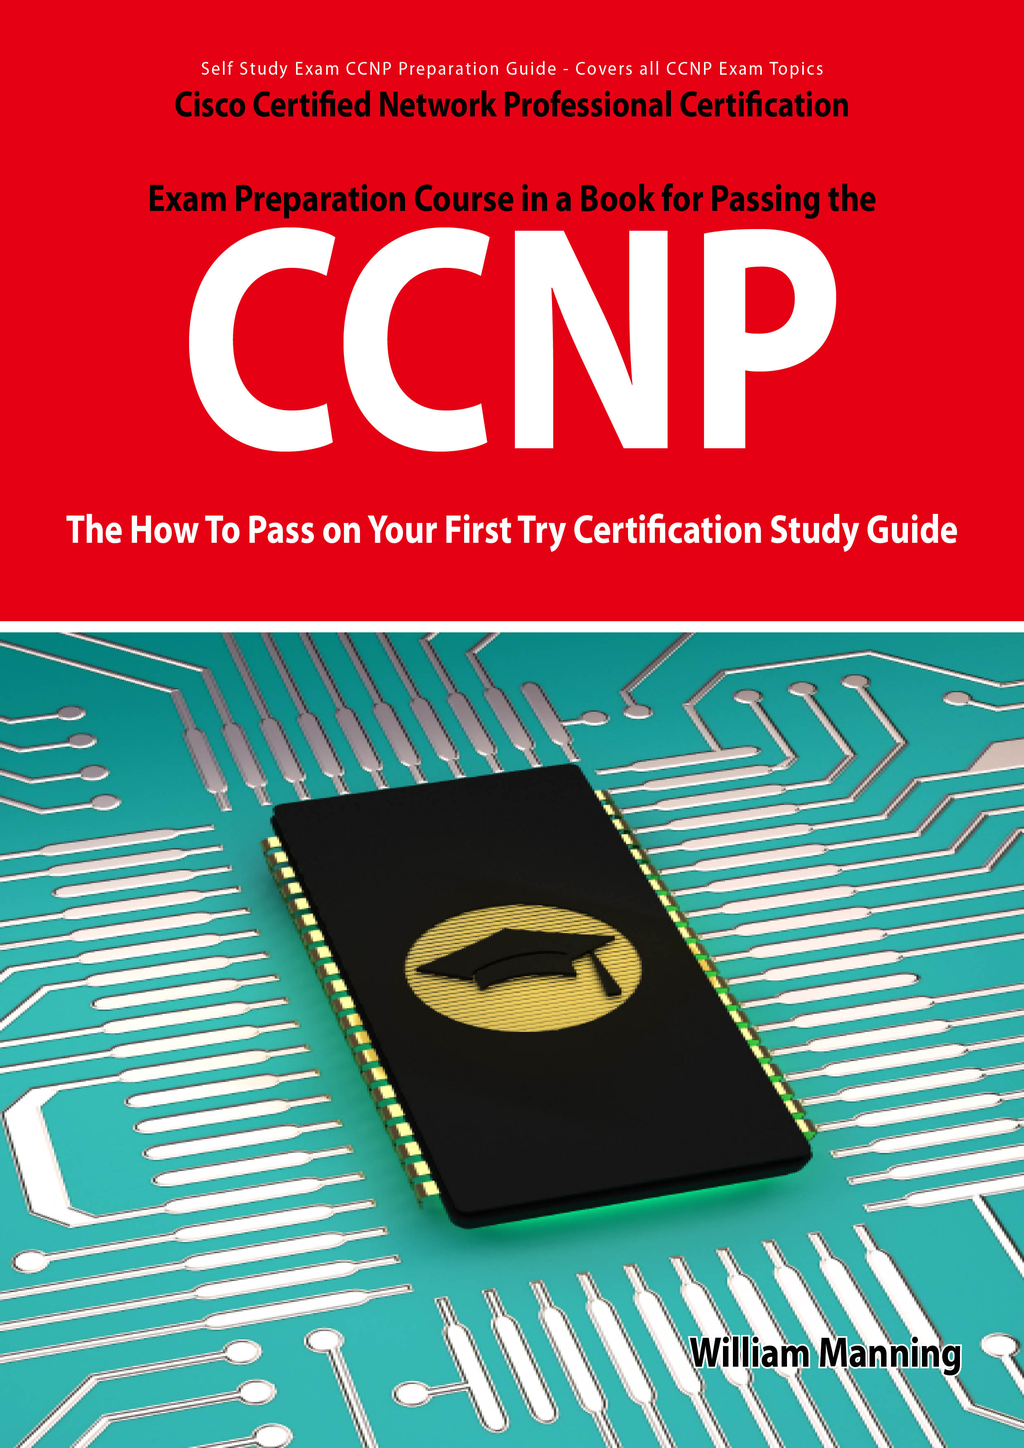 CCNP Cisco Certified Network Professional Certification Exam Preparation Course in a Book for Passing the CCNP Exam - The How To Pass on Your First Try Certification Study Guide